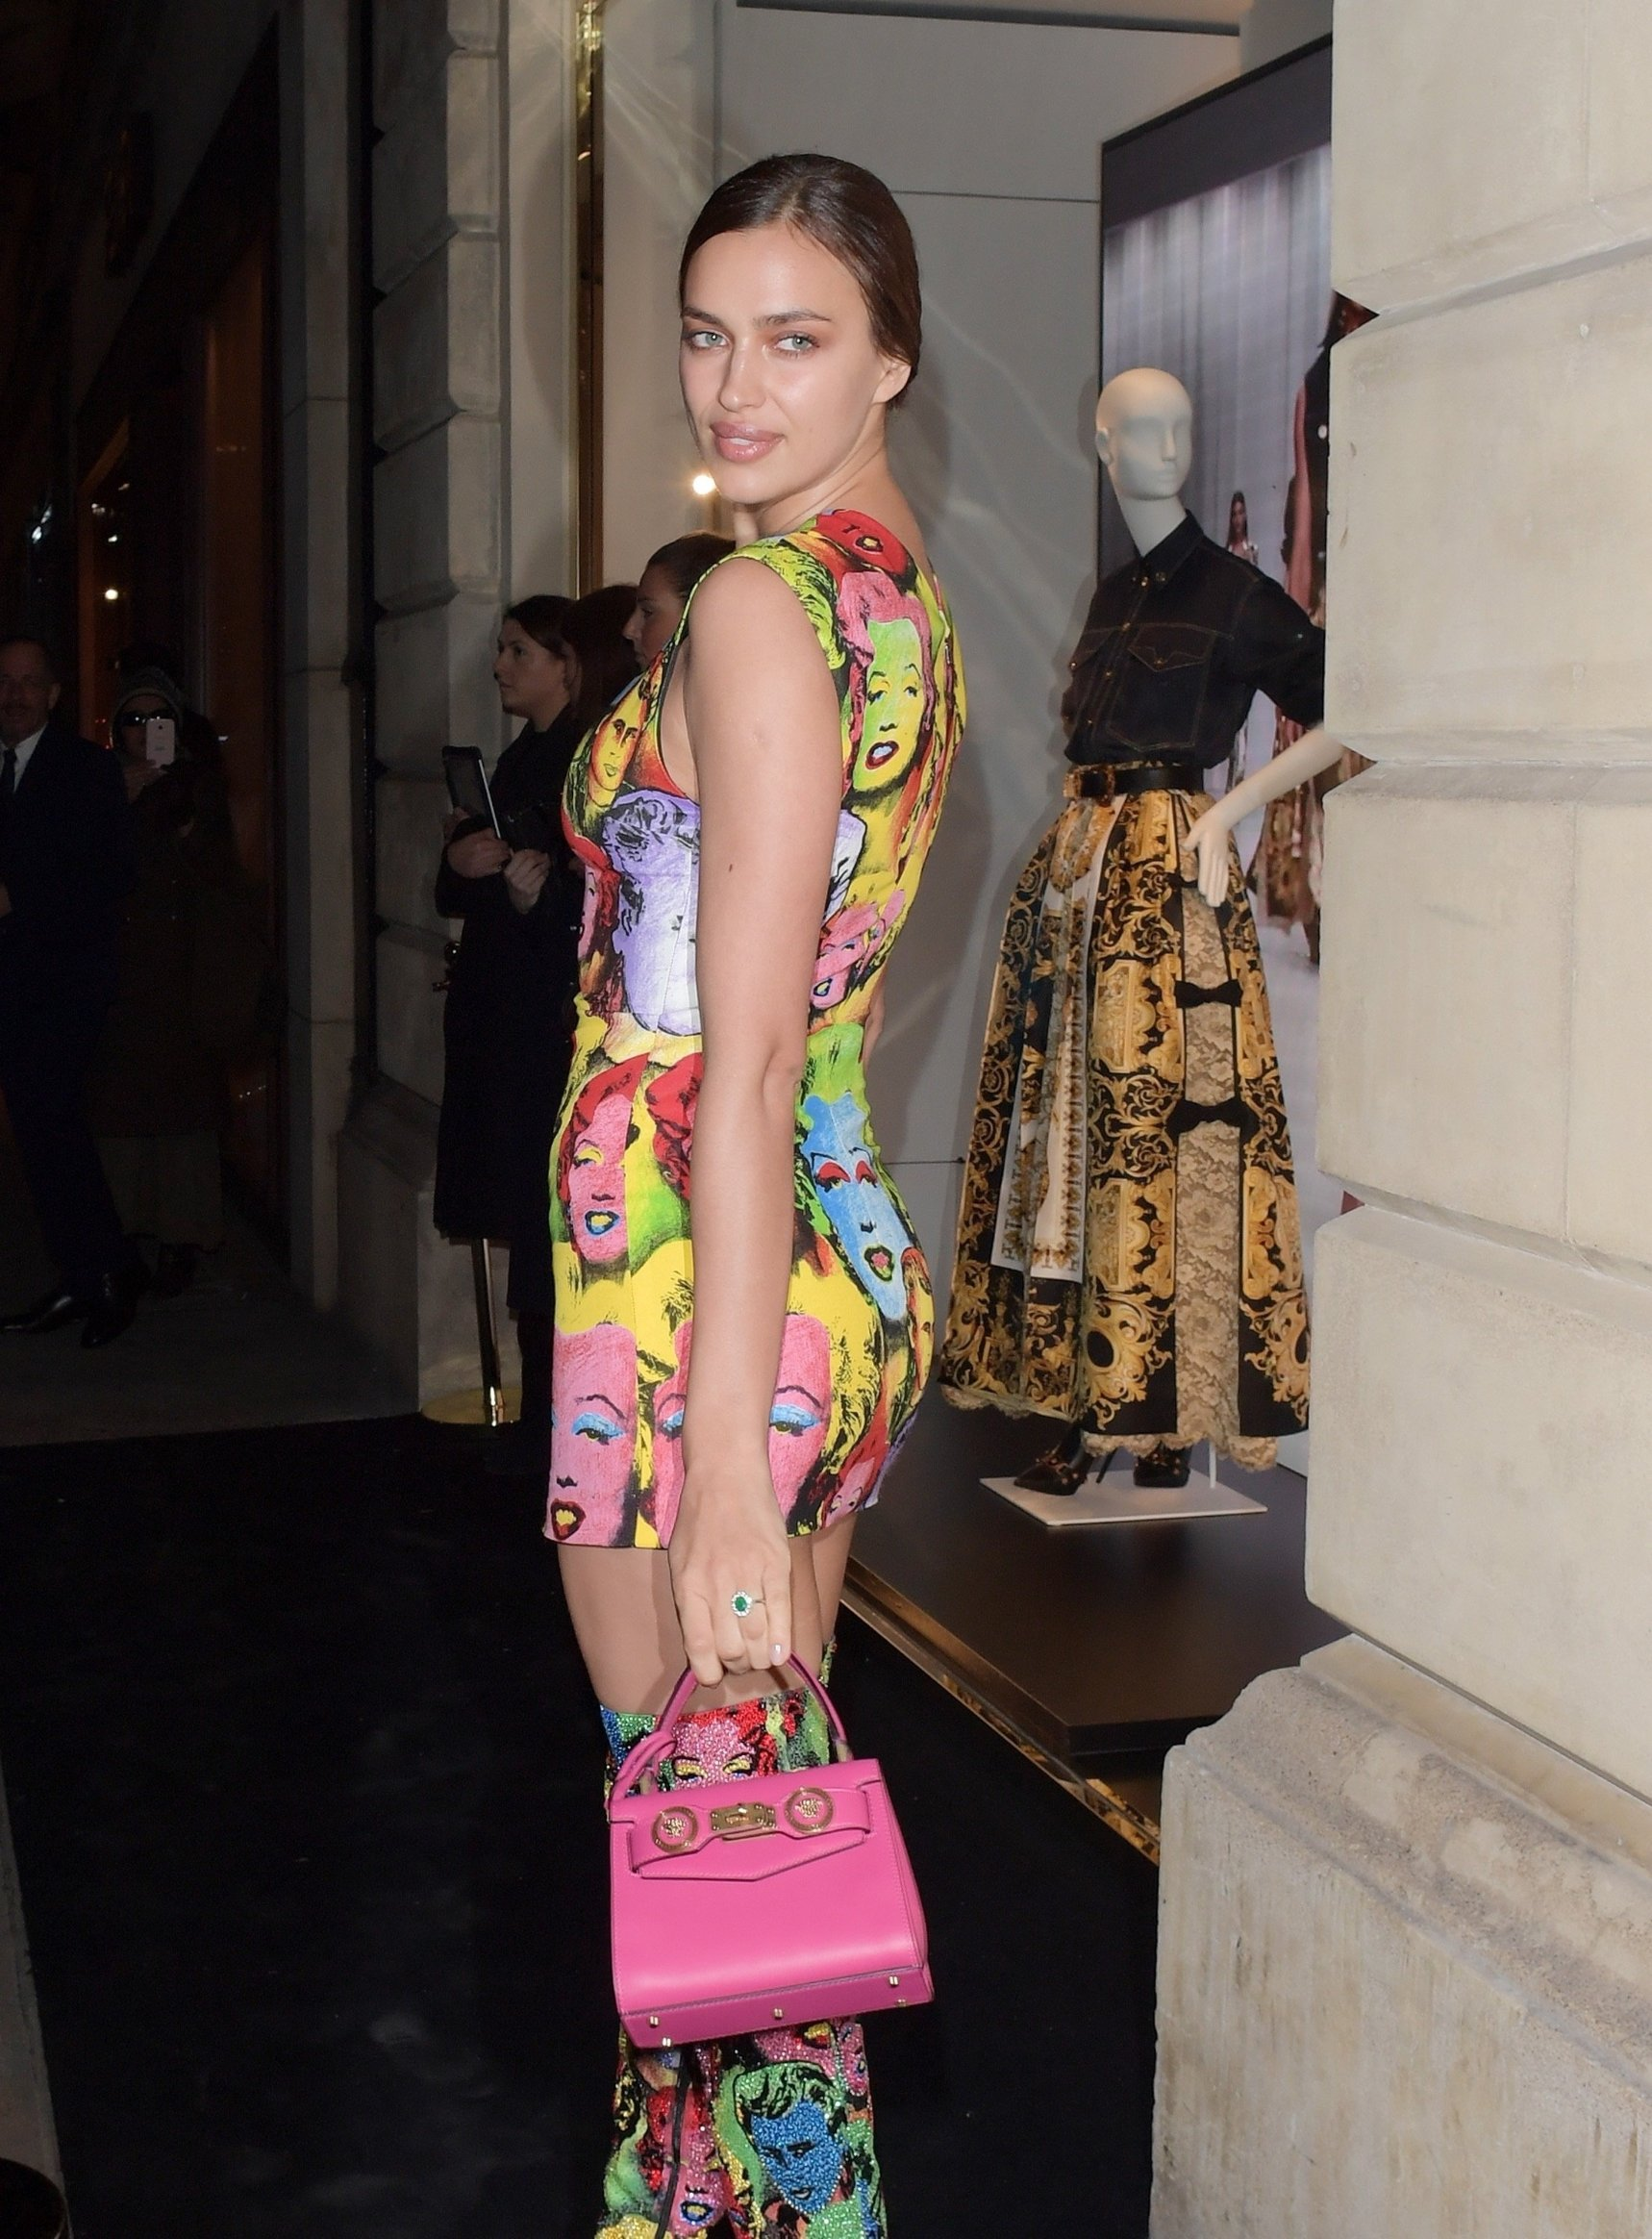 London, UNITED KINGDOM  - Irina Shayk seen arriving at the Versace Sloane Street Boutique shop opening in London. Irina was seen showing of her incredible physique in a tight fitted art pop dress.  Pictured: Irina Shayk  BACKGRID UK 5 DECEMBER 2017   UK: +44 208 344 2007 / uksales@backgrid.com  USA: +1 310 798 9111 / usasales@backgrid.com  *UK Clients - Pictures Containing Children Please Pixelate Face Prior To Publication*, Image: 357011915, License: Rights-managed, Restrictions: , Model Release: no, Credit line: Profimedia, Backgrid UK